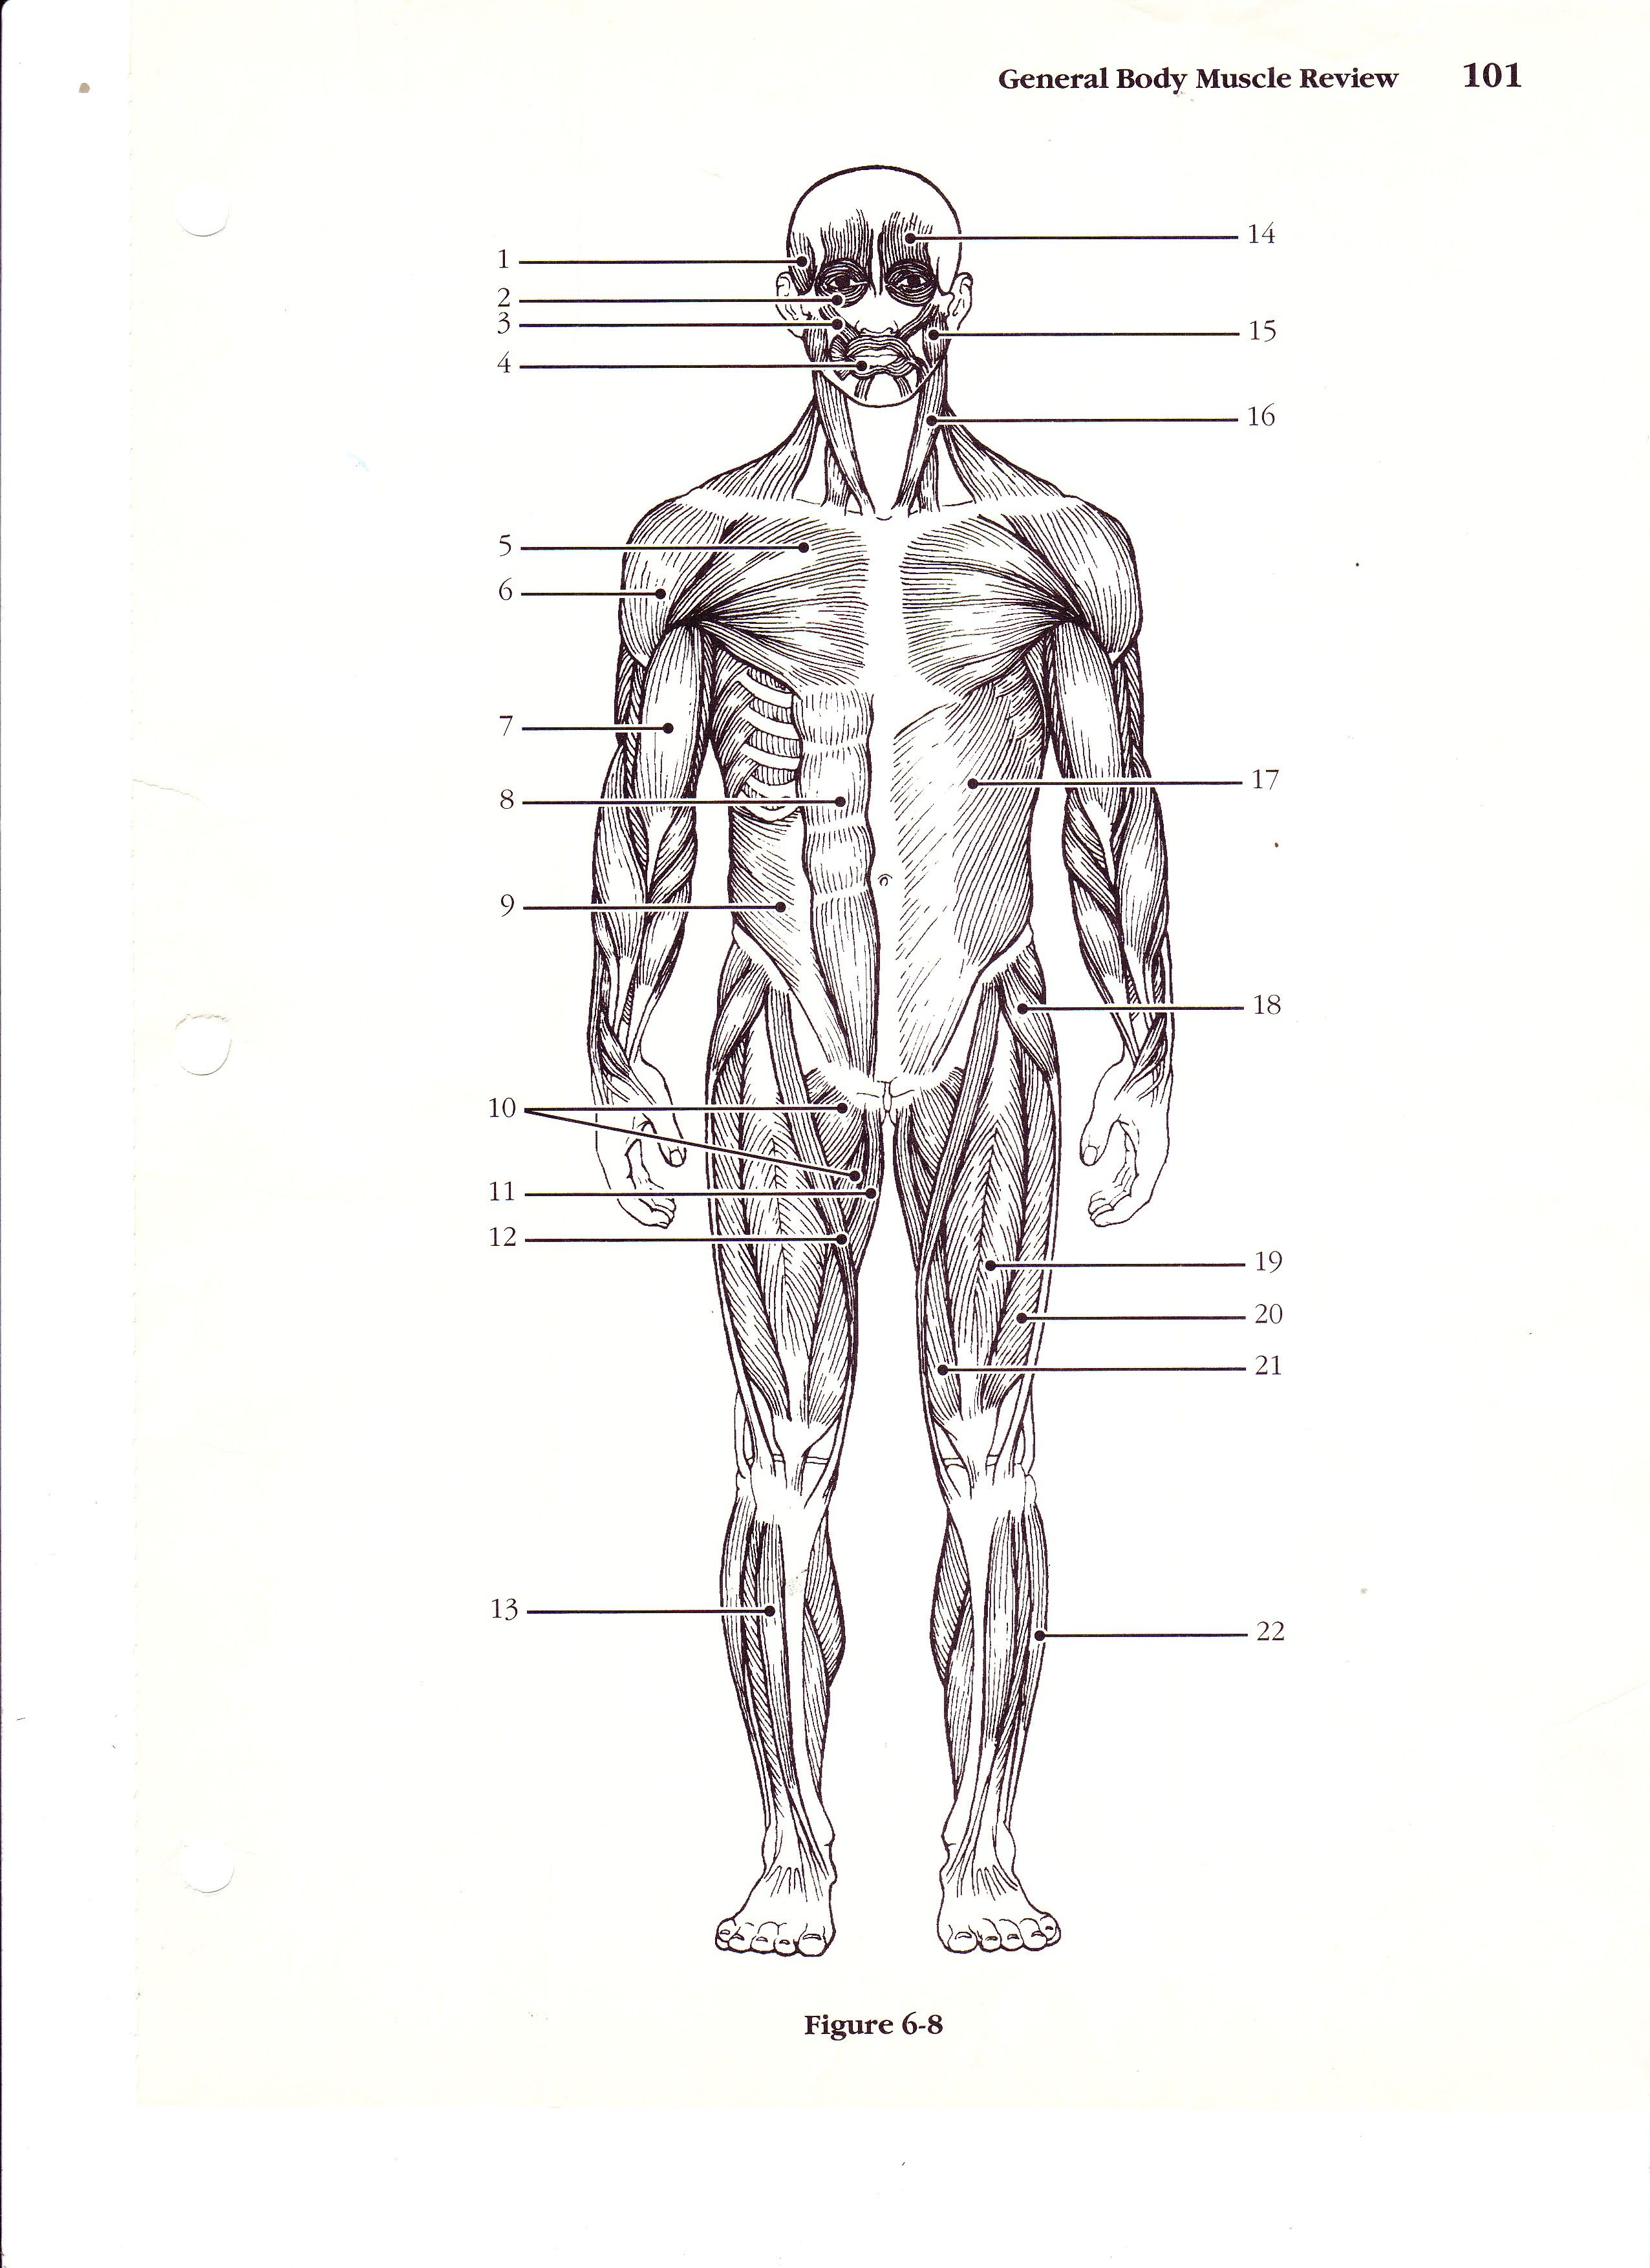 Muscle Diagram To Label With Images